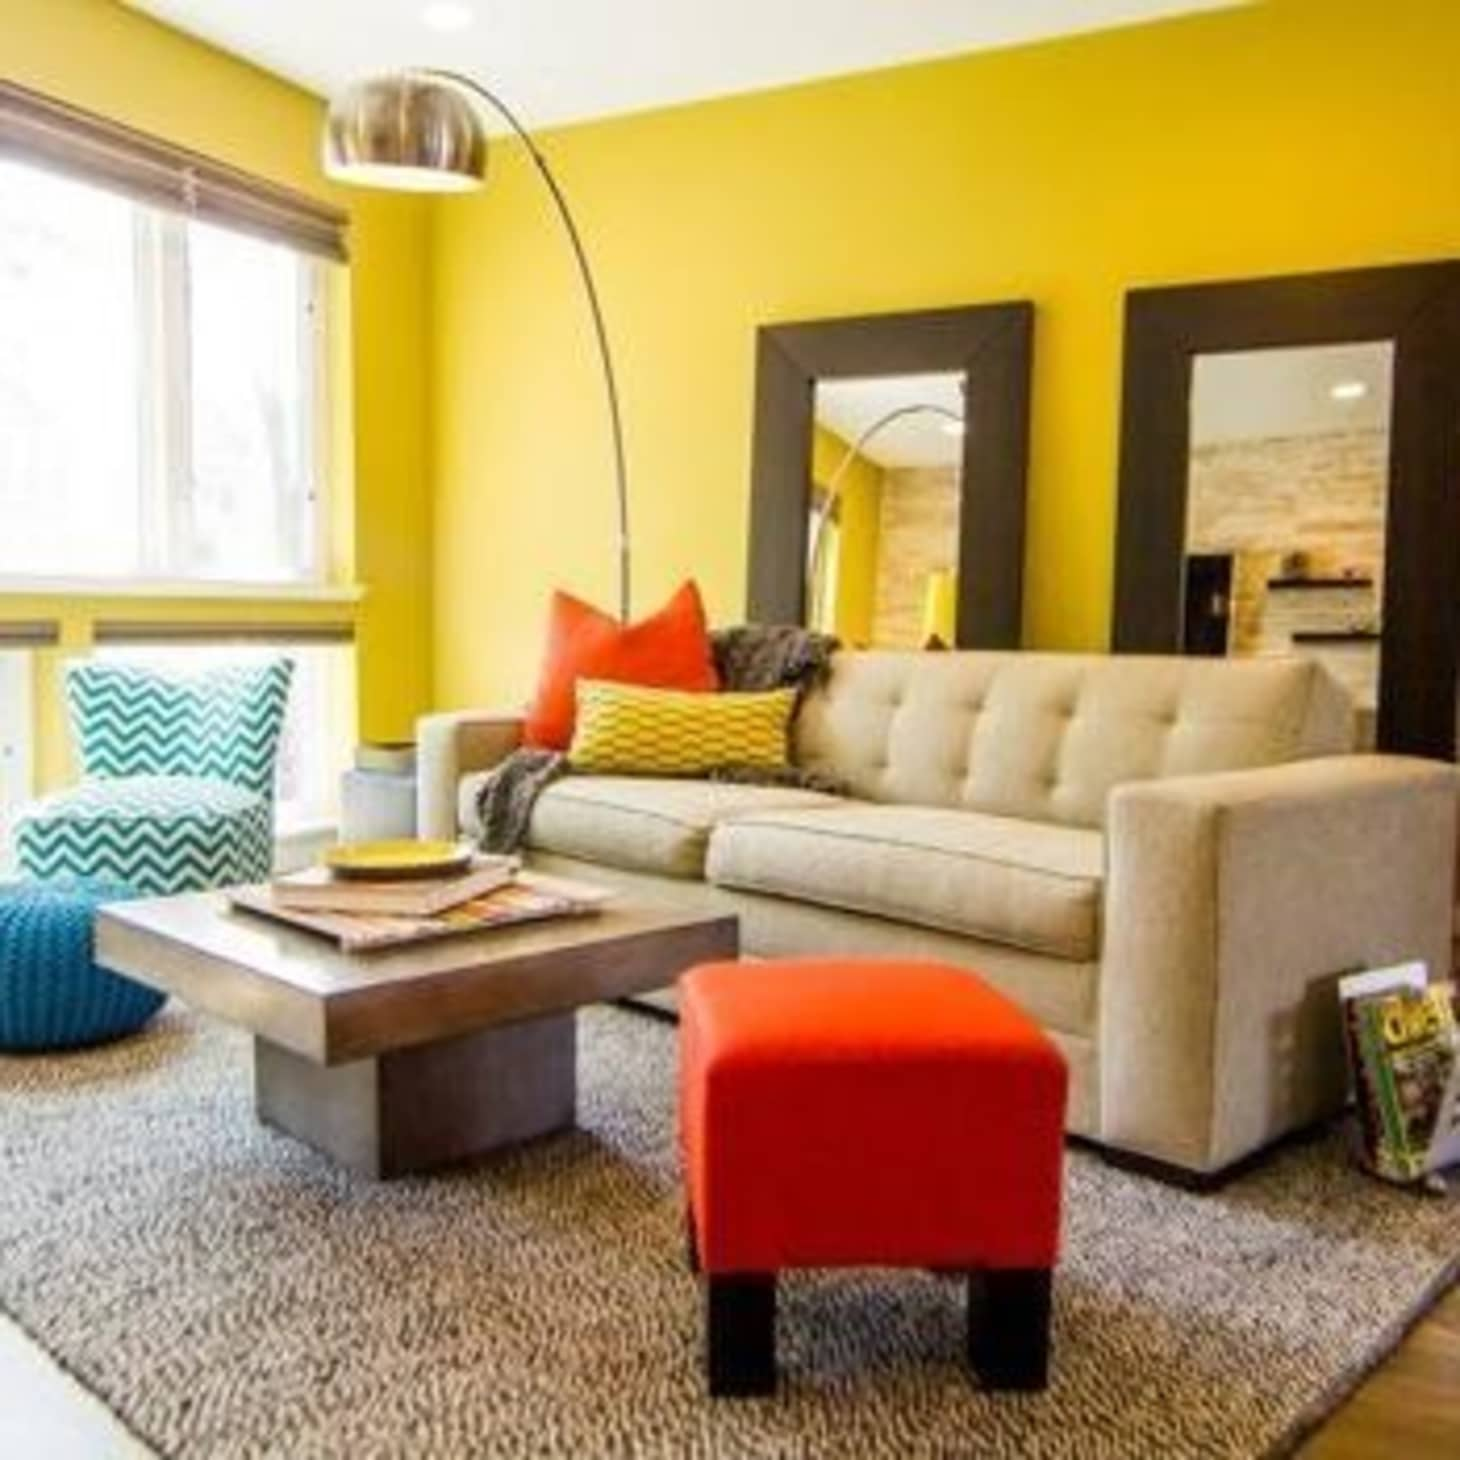 Cool Design For A Living Room: How To Work With Warm & Cool Colors